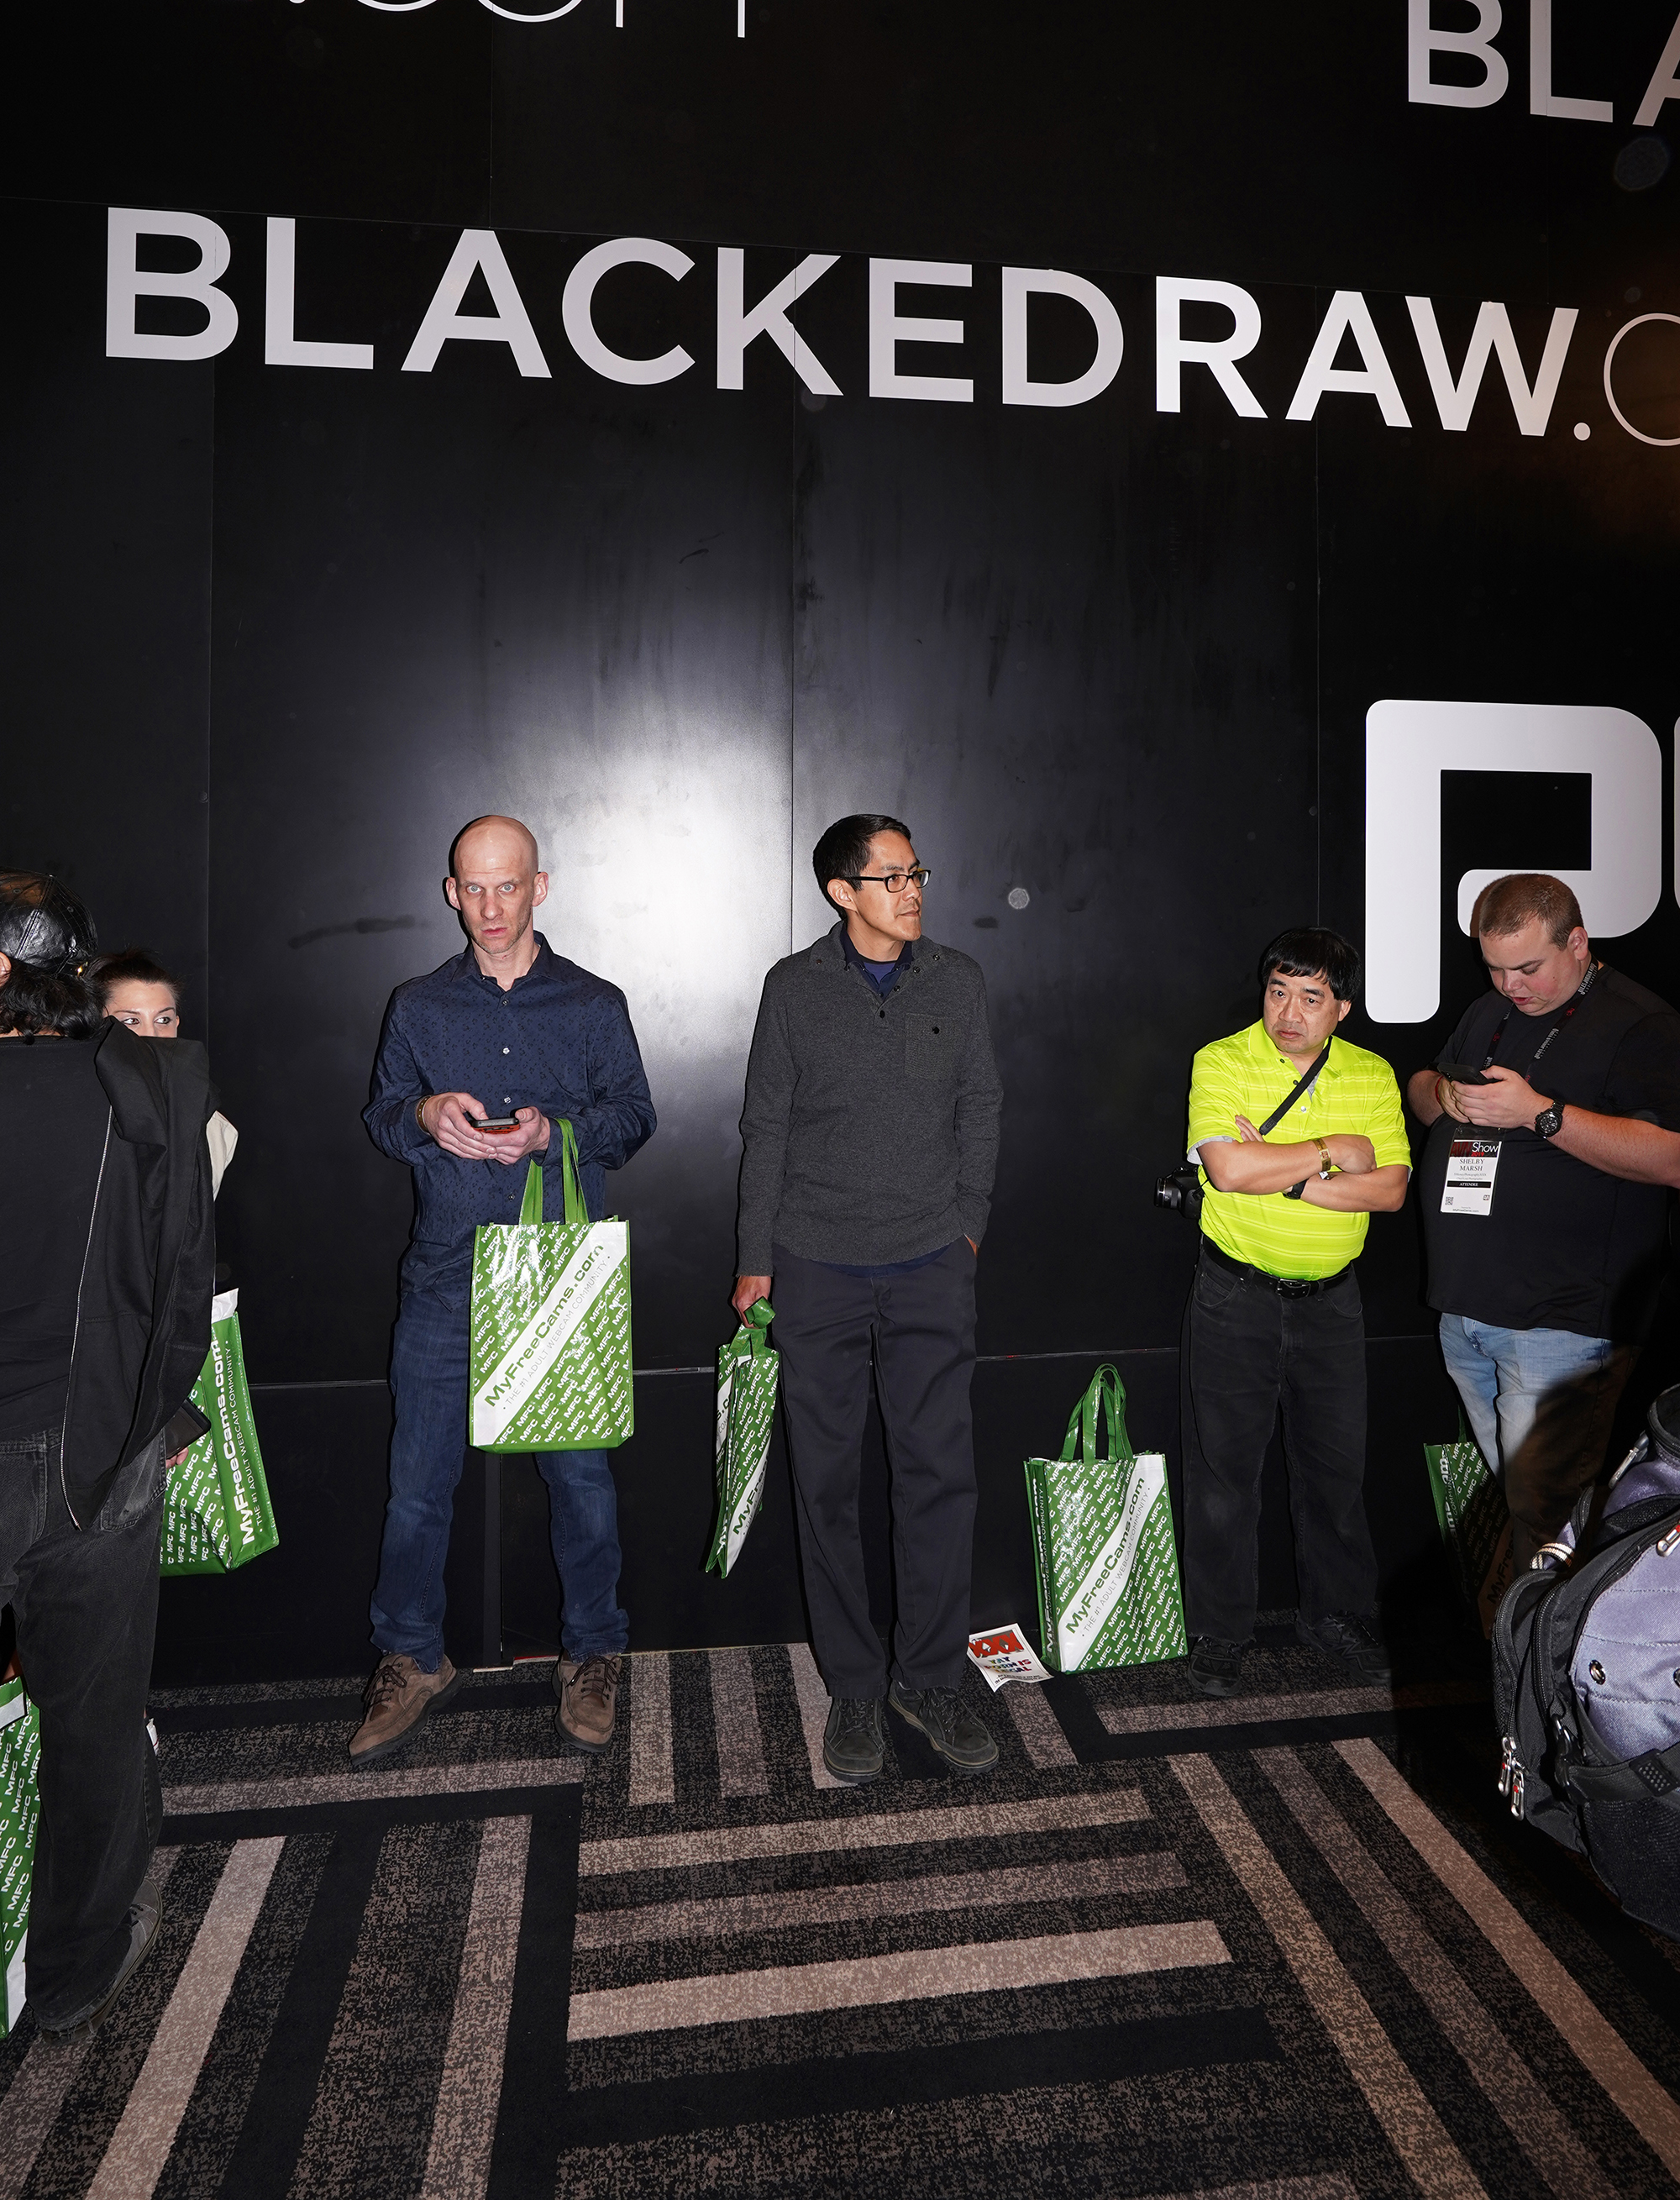 A group of porn fans lining up under an advertisement for BlackedRaw